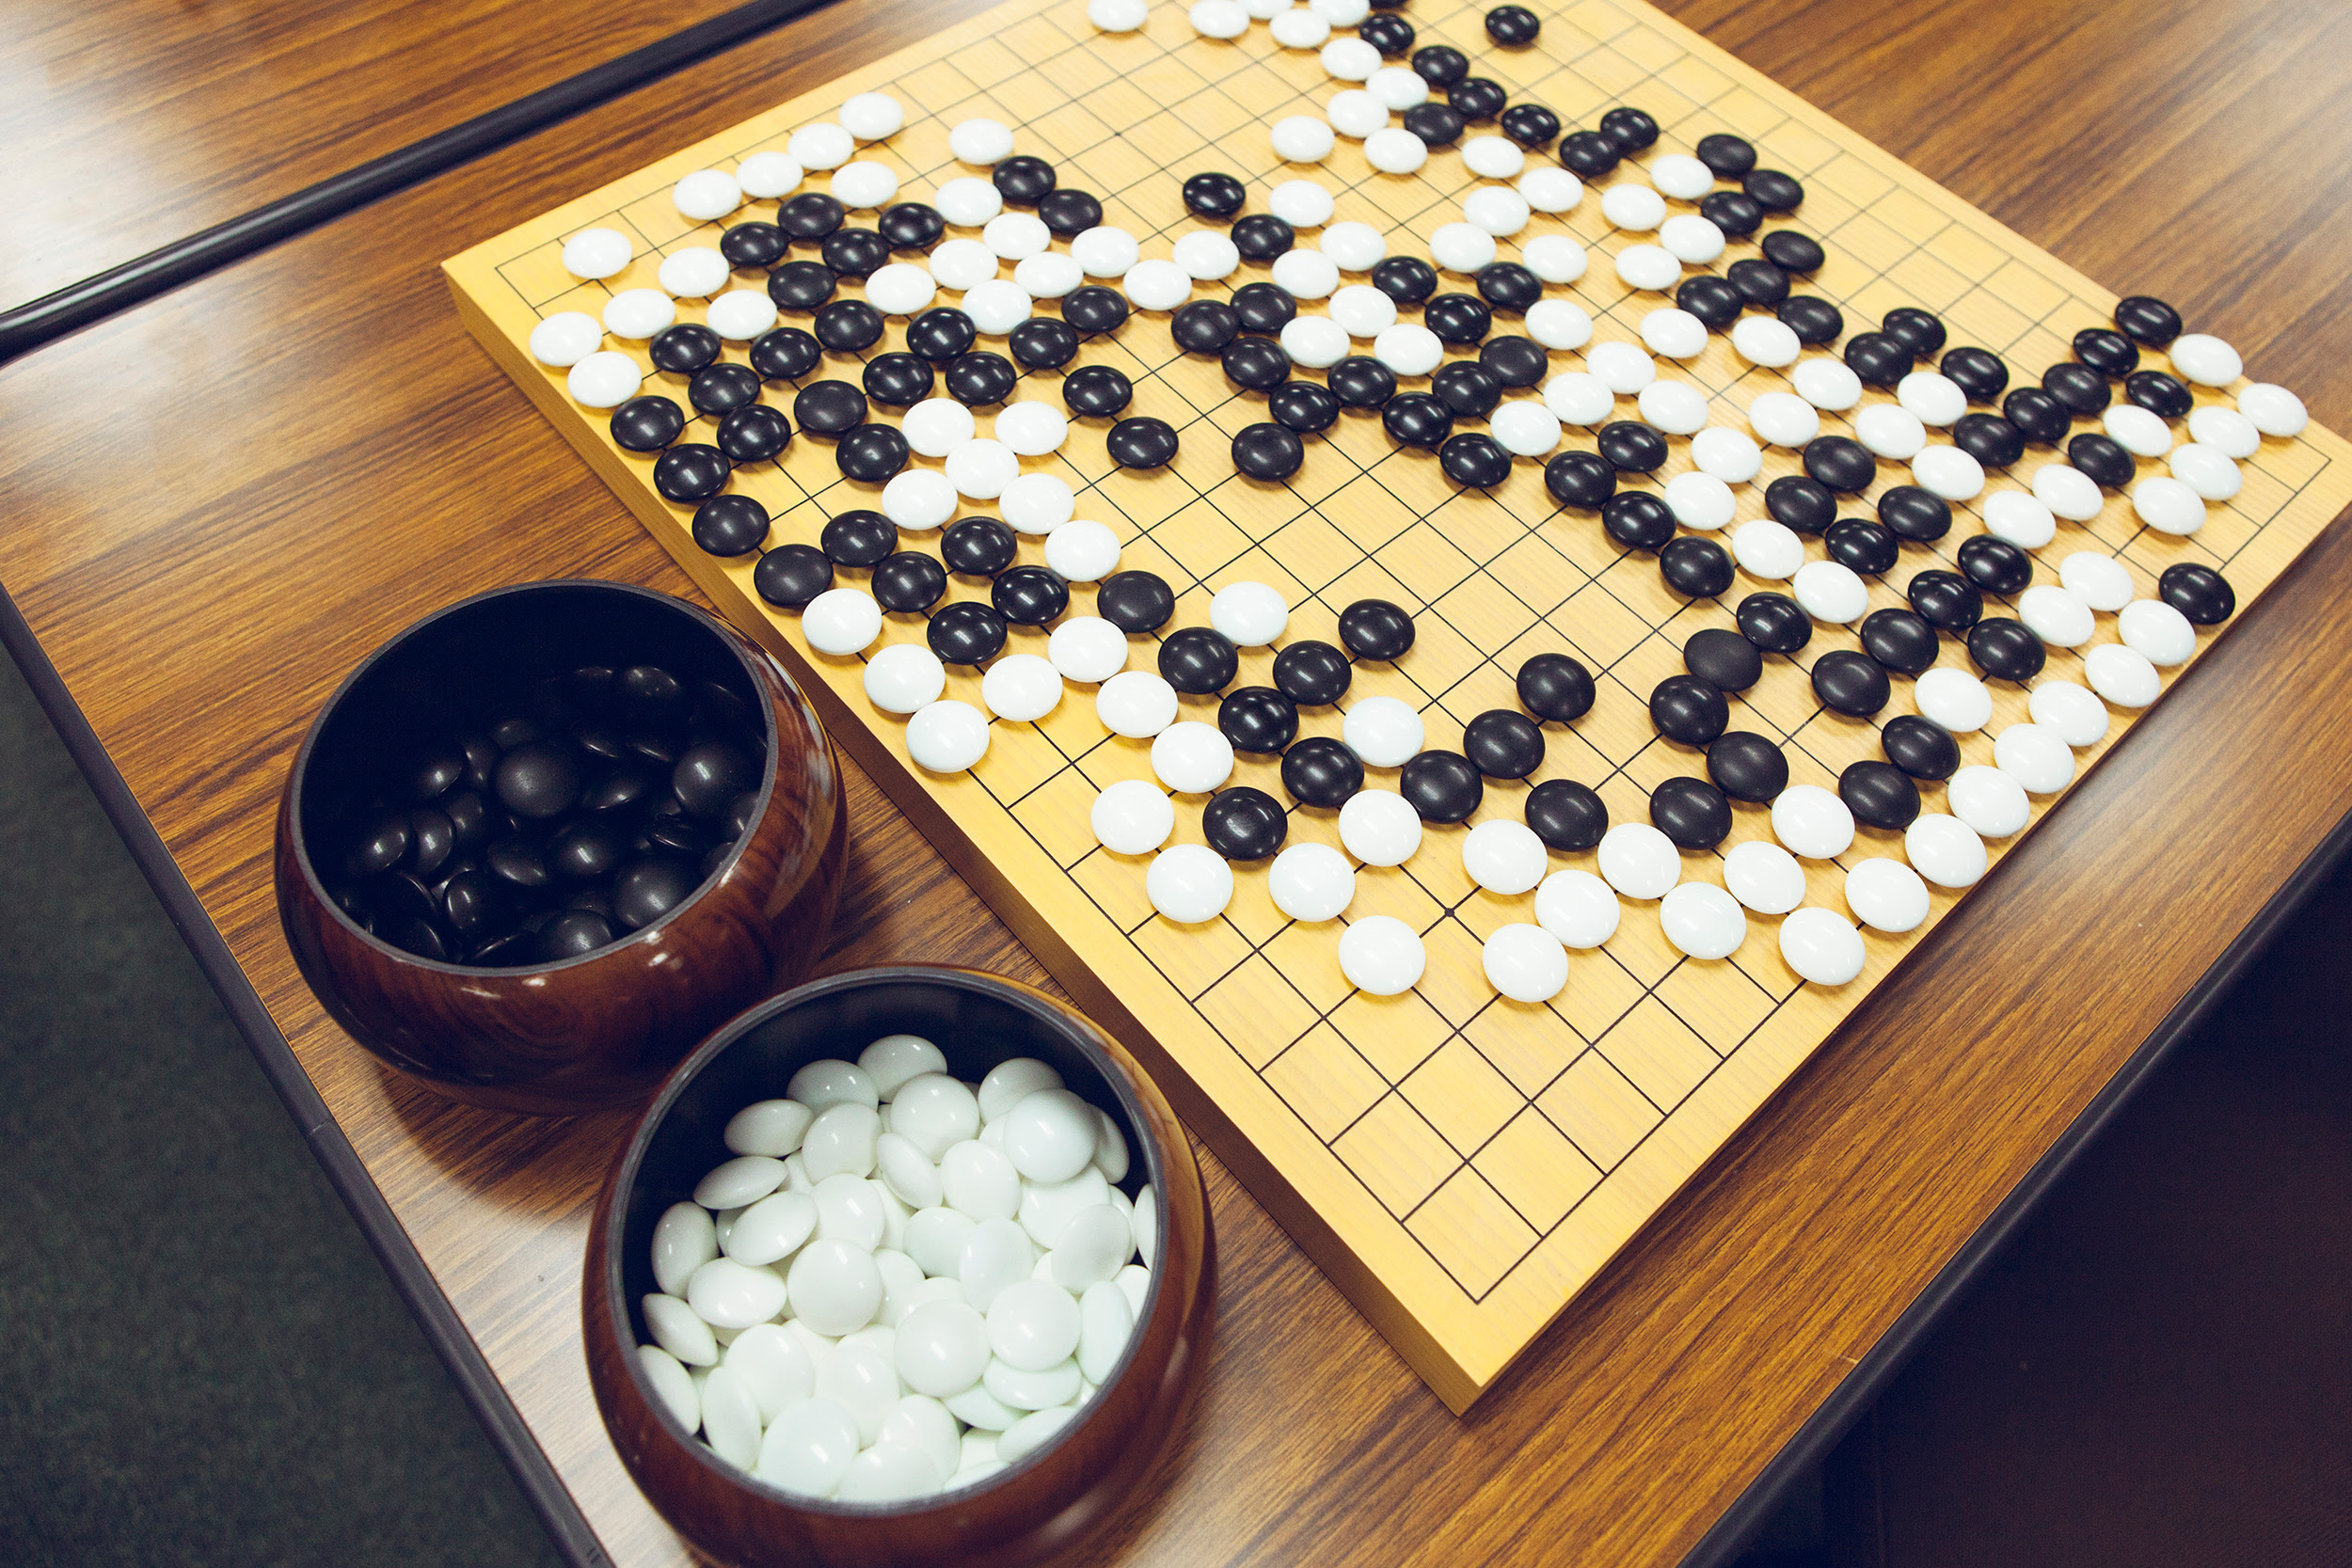 A traditional Go gameboard